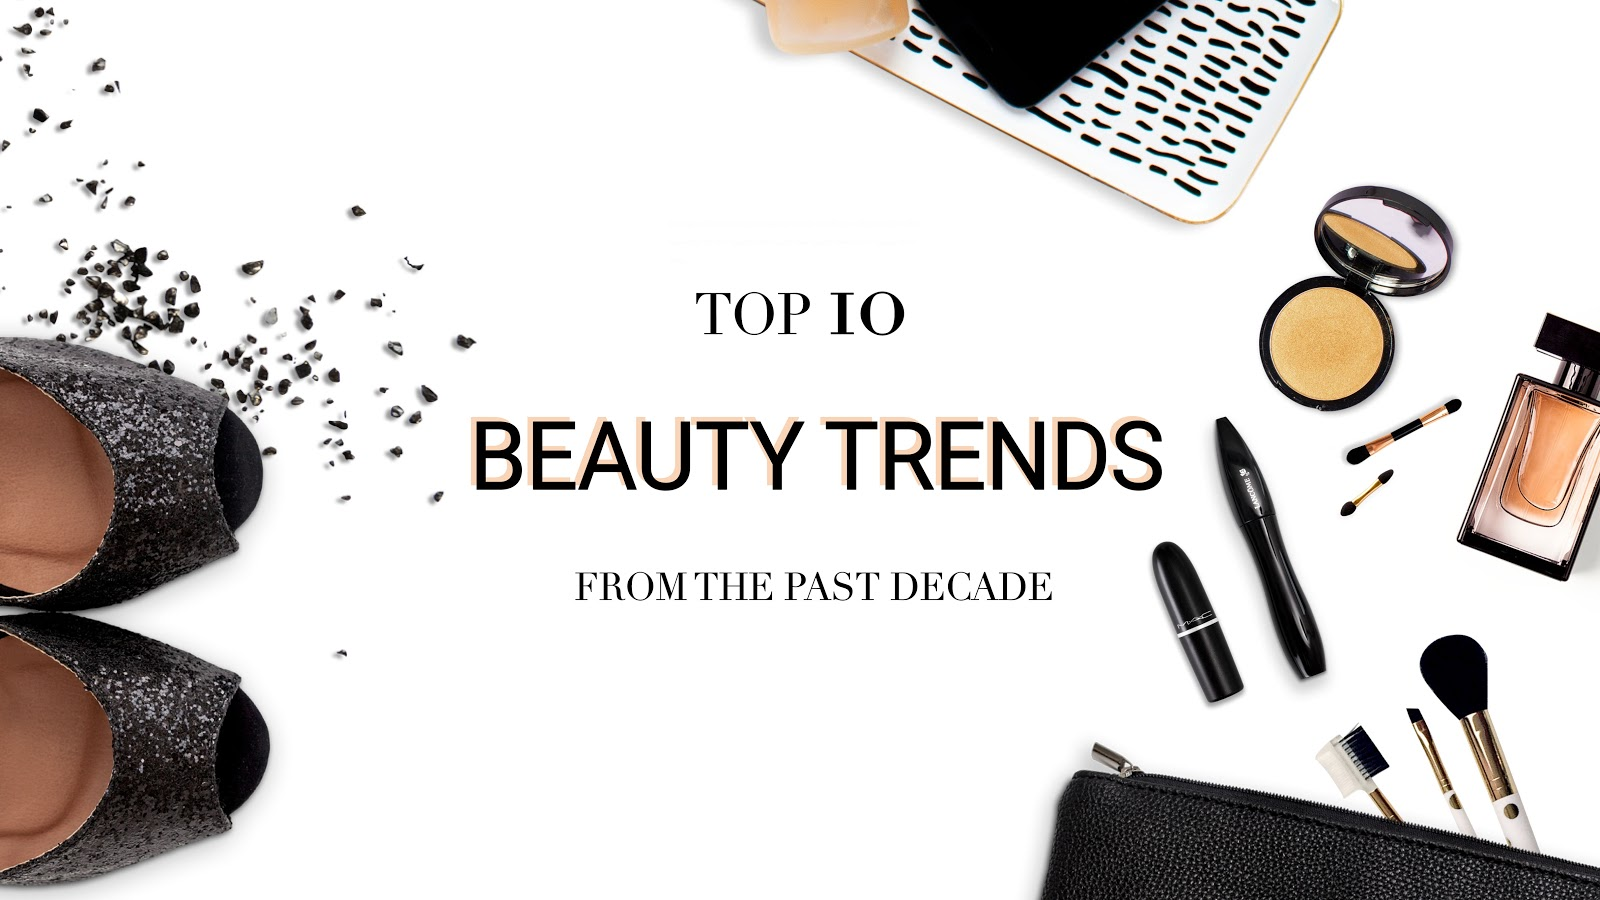 Top 10 Beauty Trends From The Past Decade